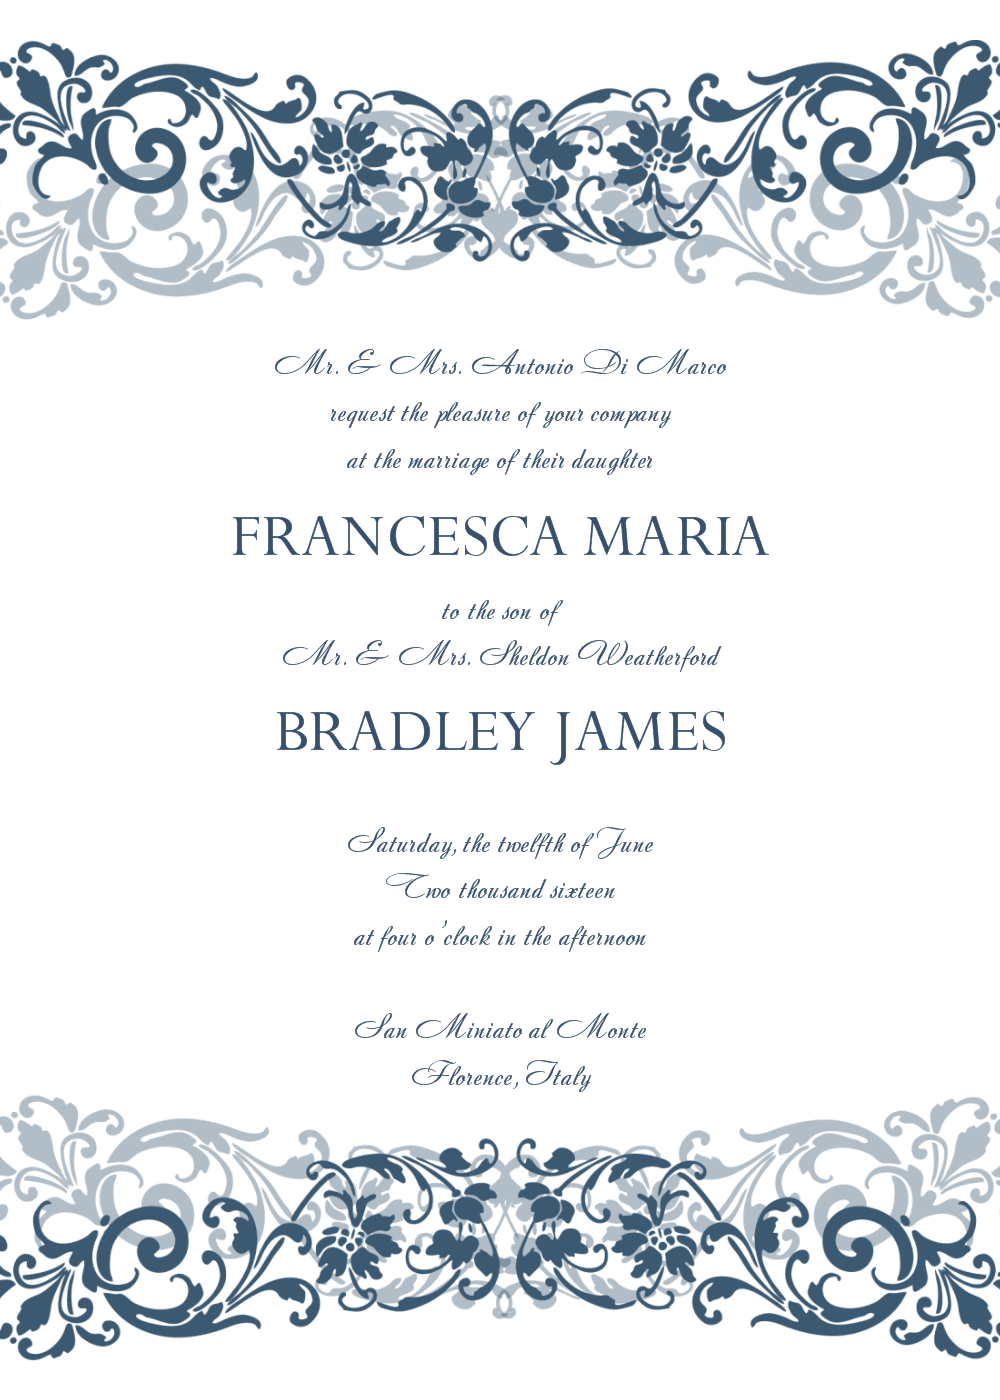 Wedding Invitation Templates Free Download - Wedding invitation templates: email wedding invitation templates free download